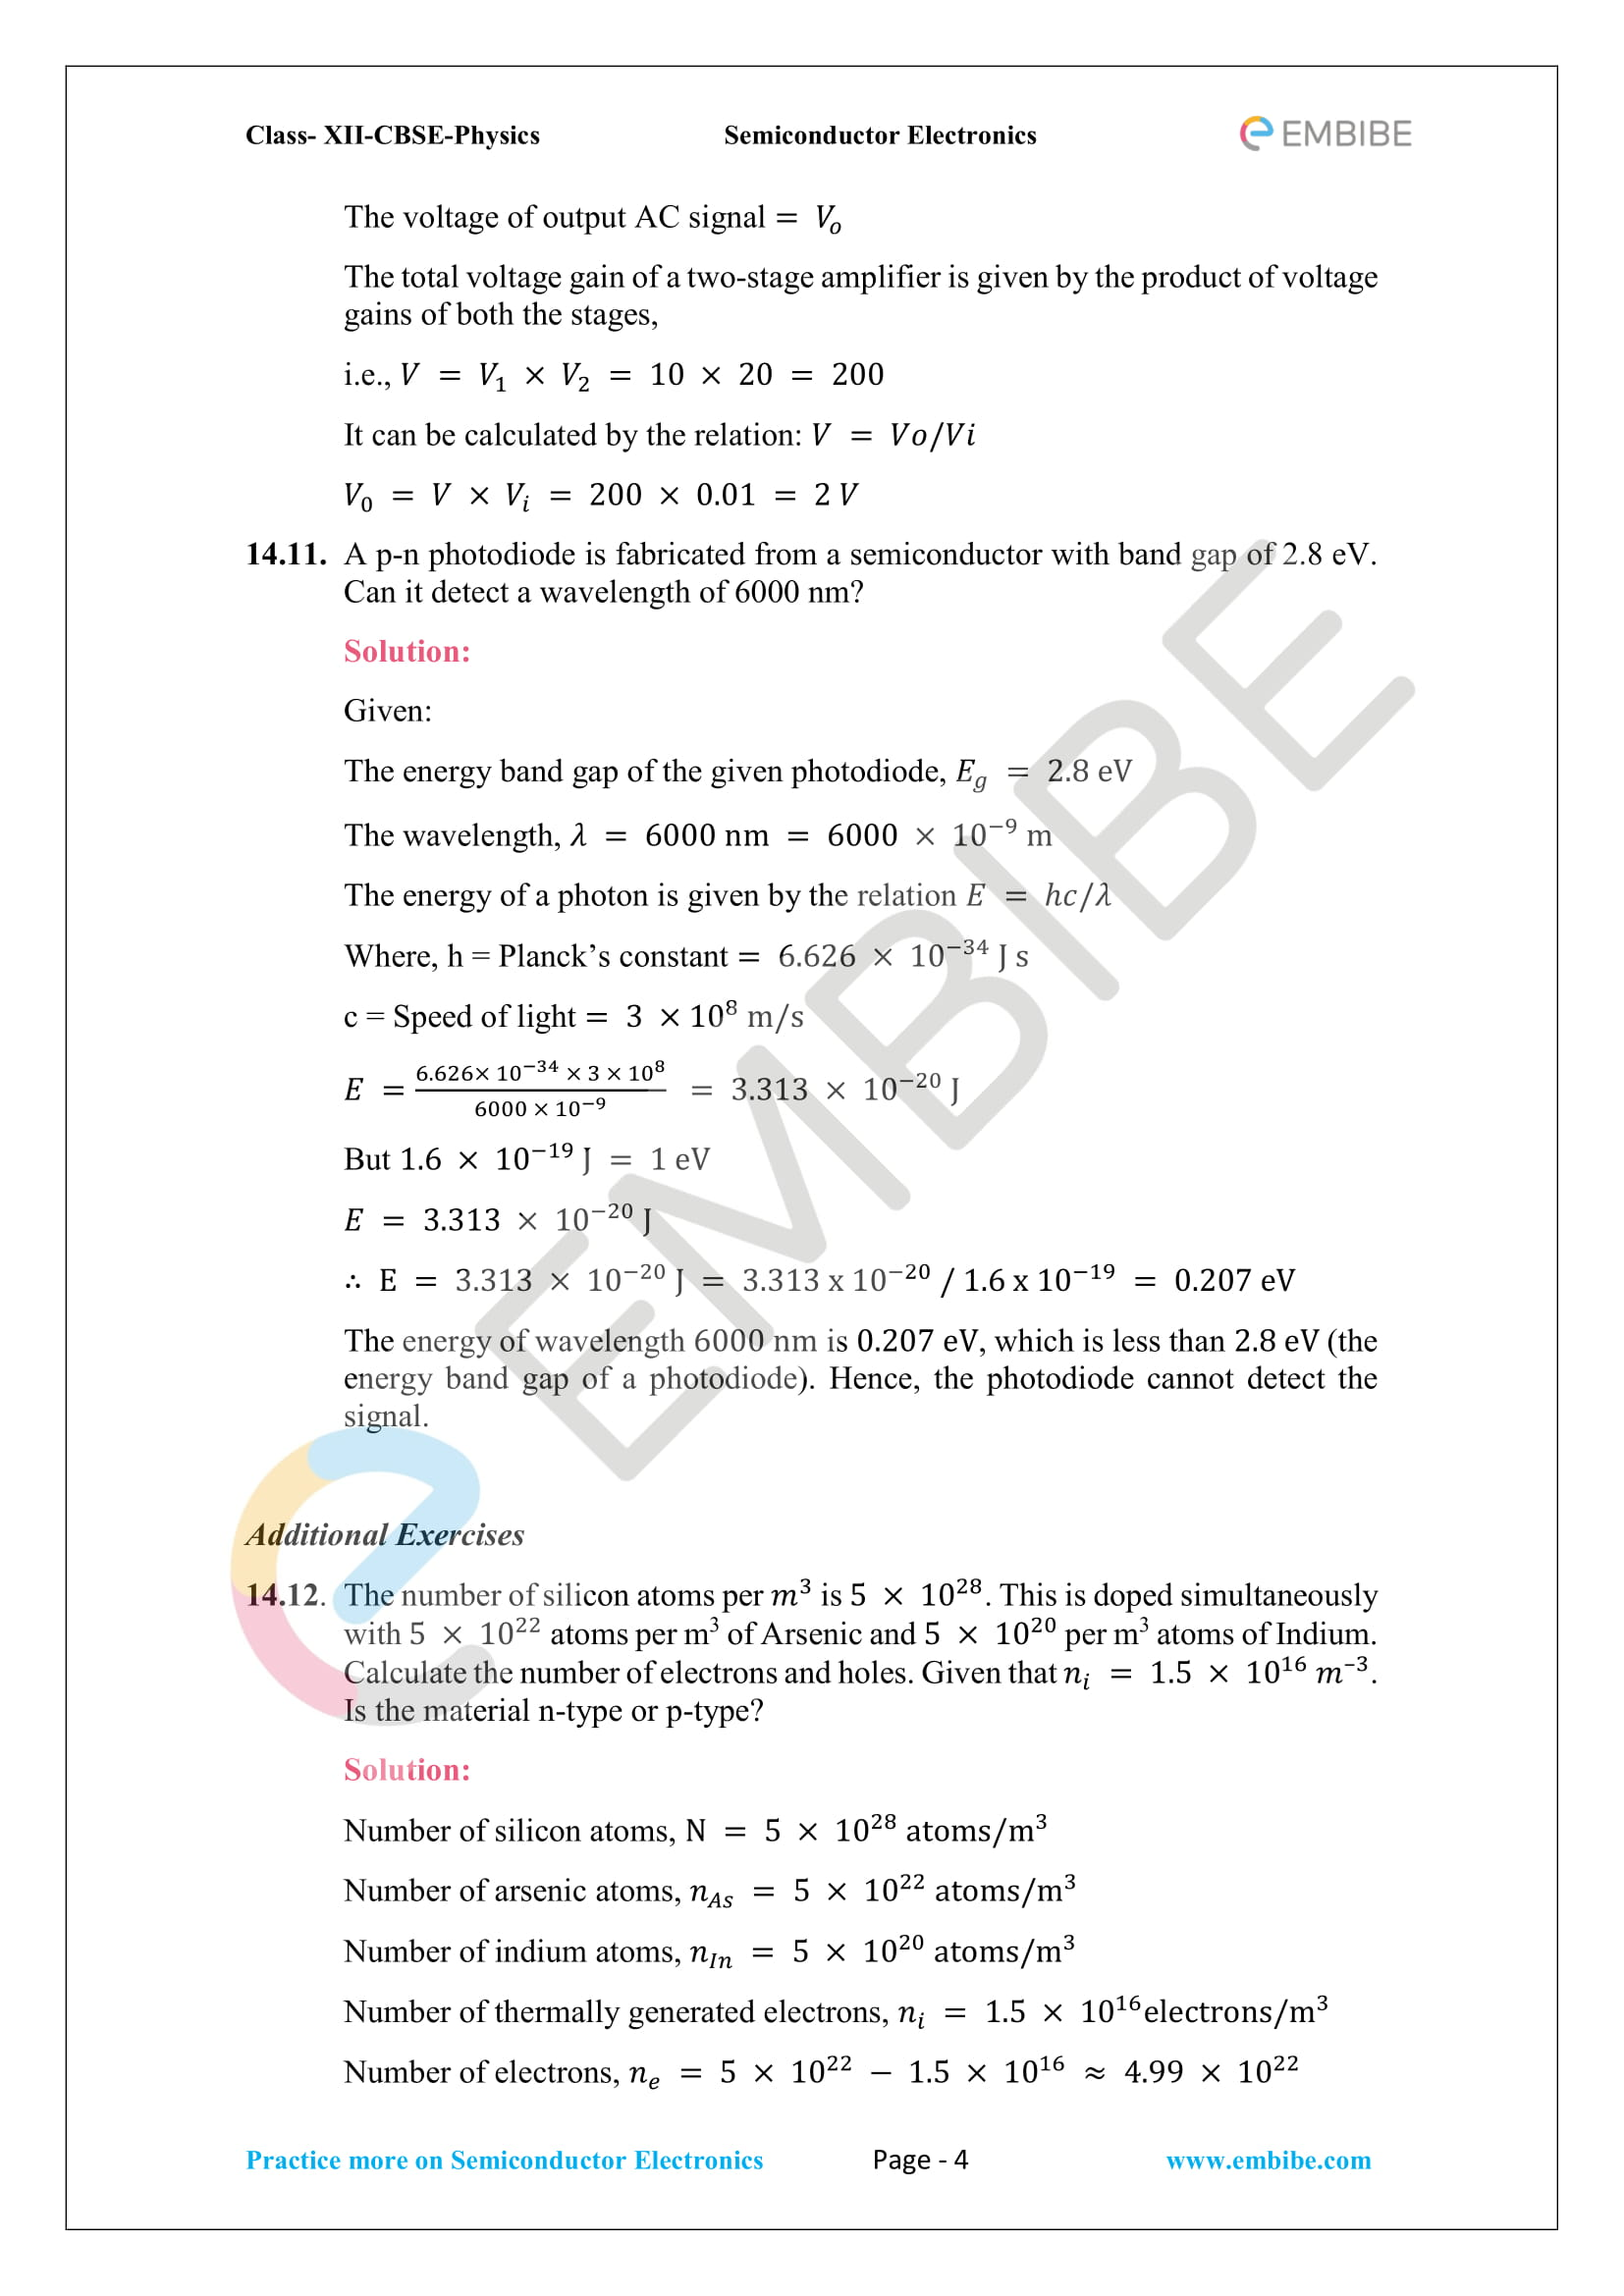 CBSE NCERT Solutions for Class 12 Physics Chapter 14 PDF Download